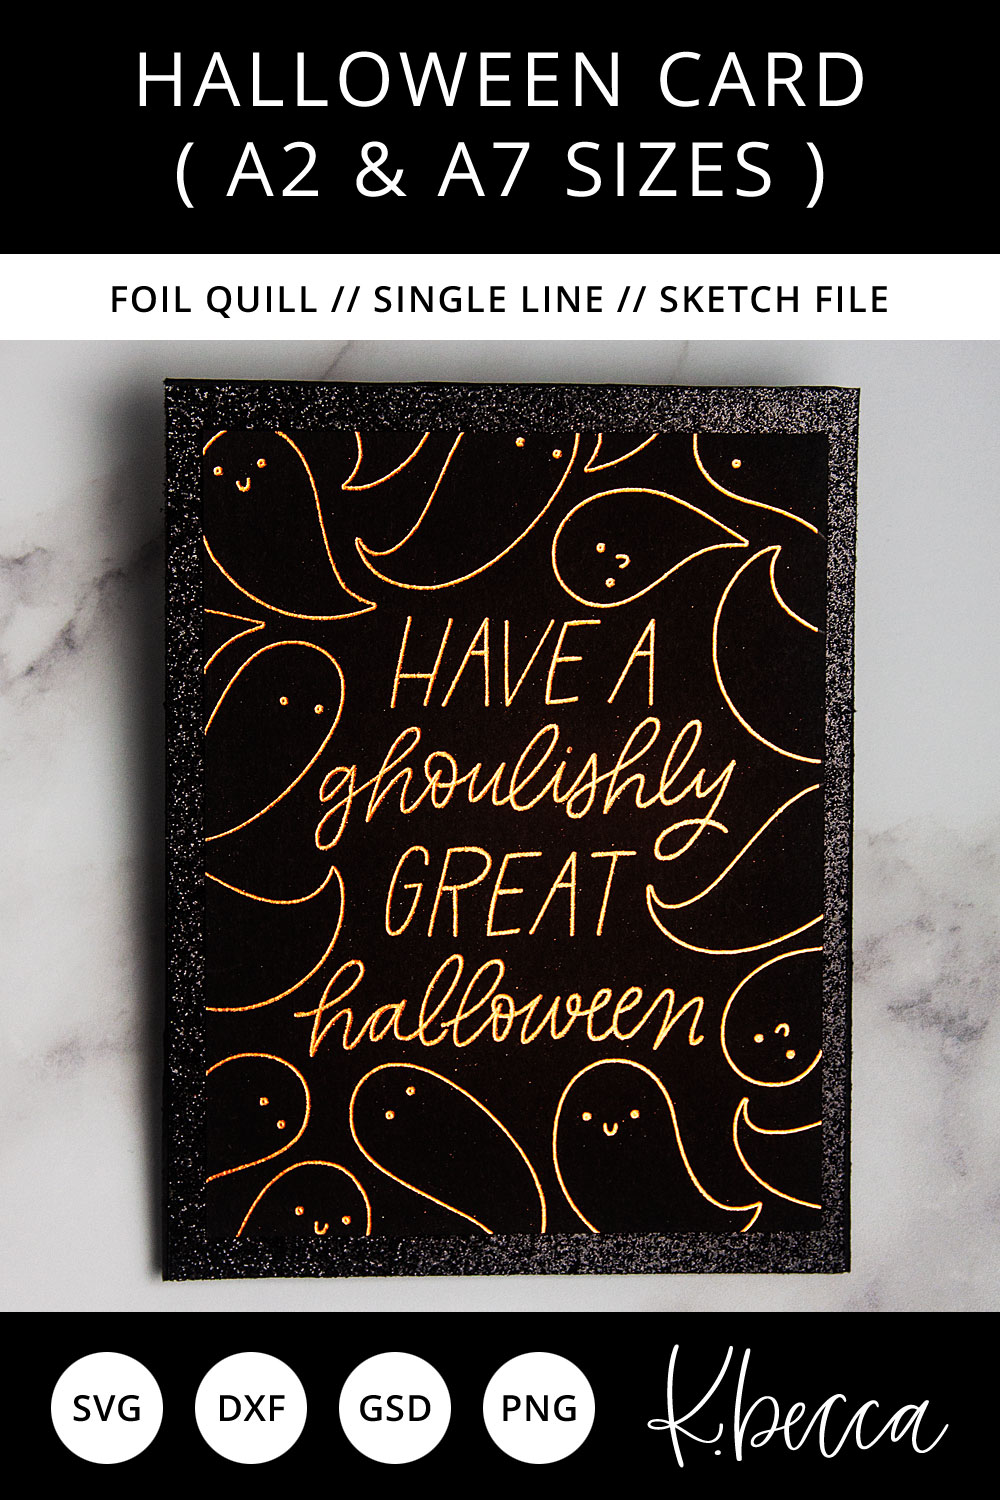 Foil Quill Sketch Halloween Card SVG - A2 & A7 Sizes example image 3